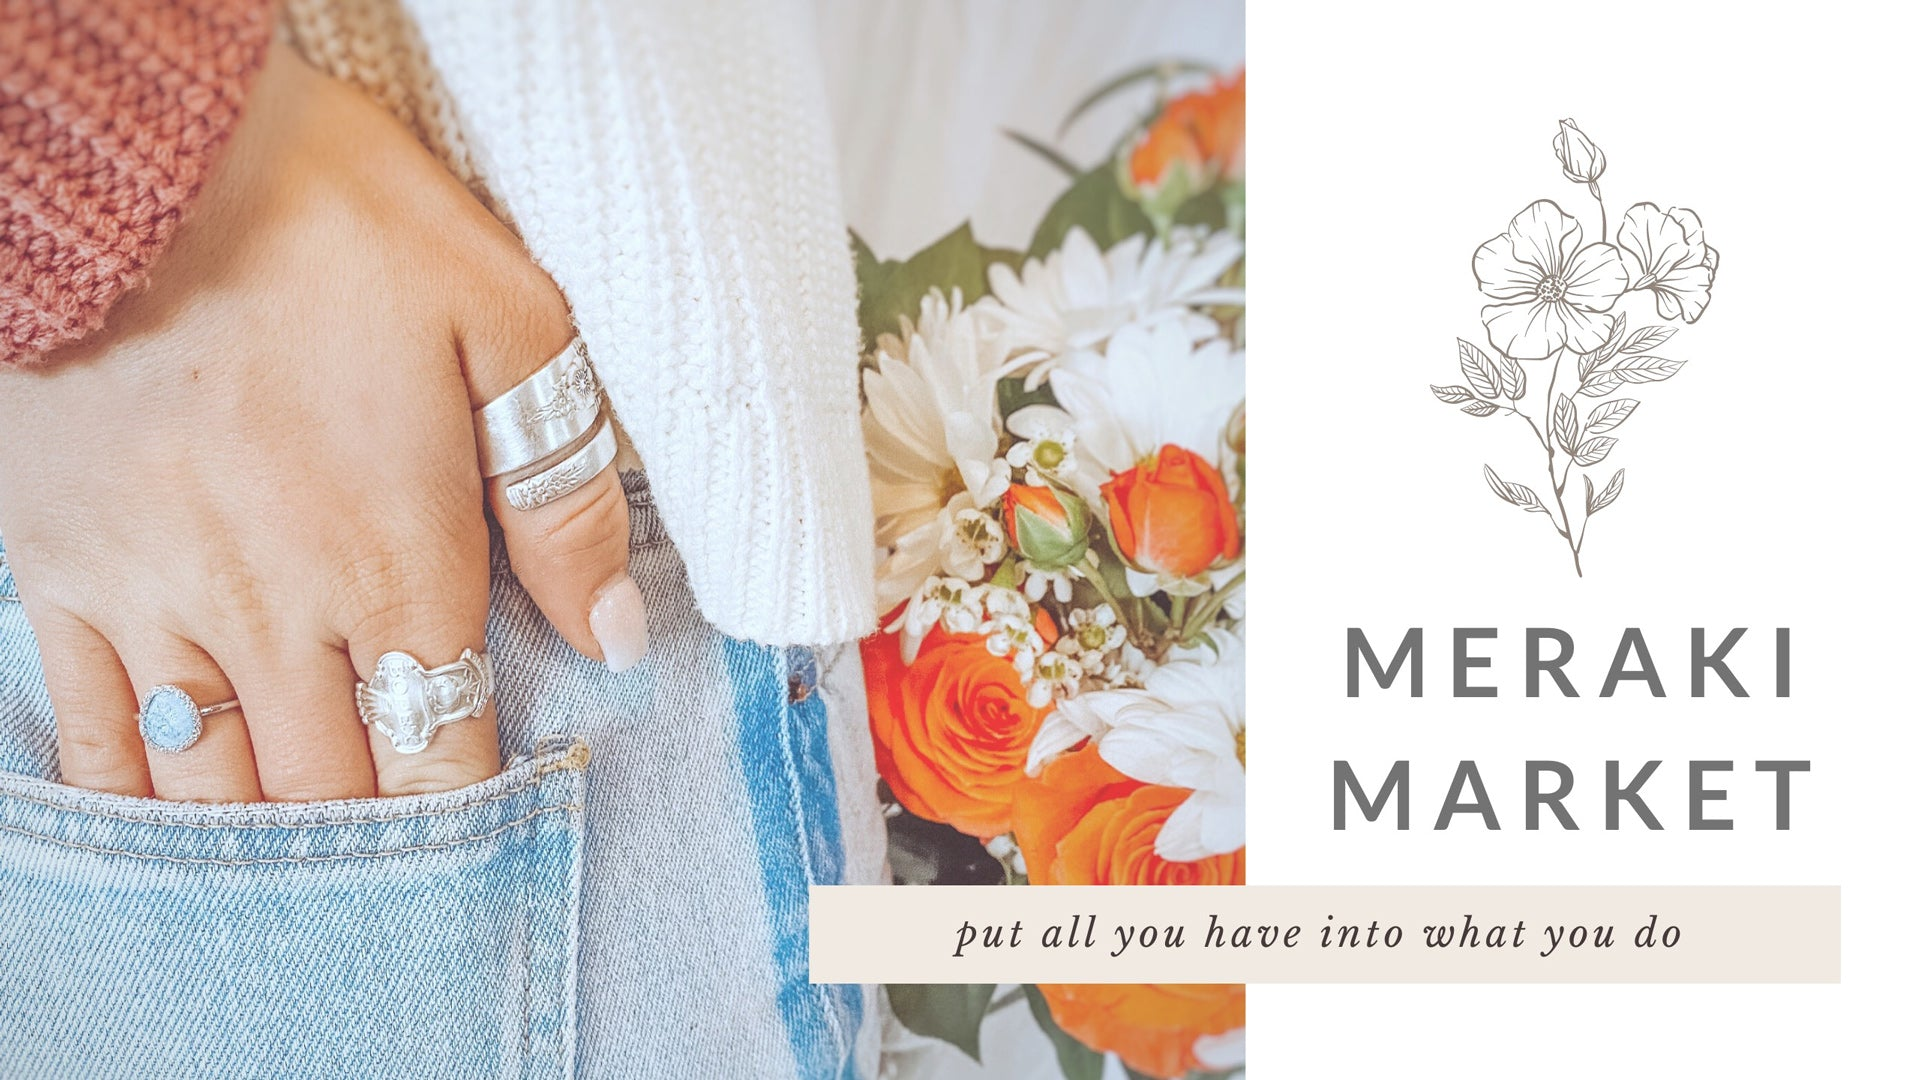 Meraki Market: Put All You Have Into What You Do